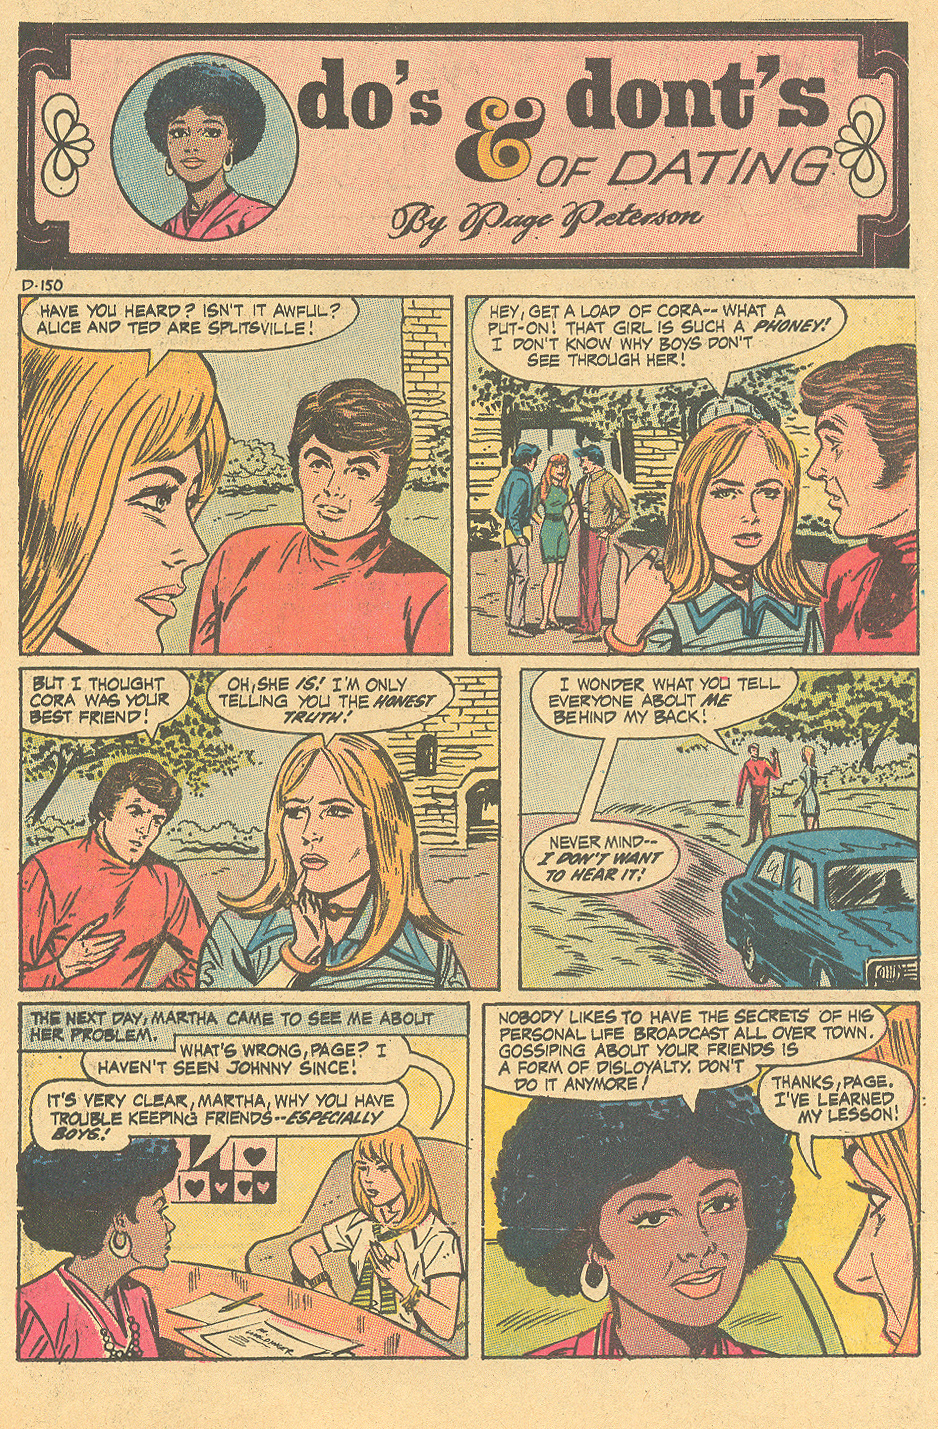 """Do's & Dont's of Dating by Page Peterson""  Girls' Love Stories  #159 (May 1971)"